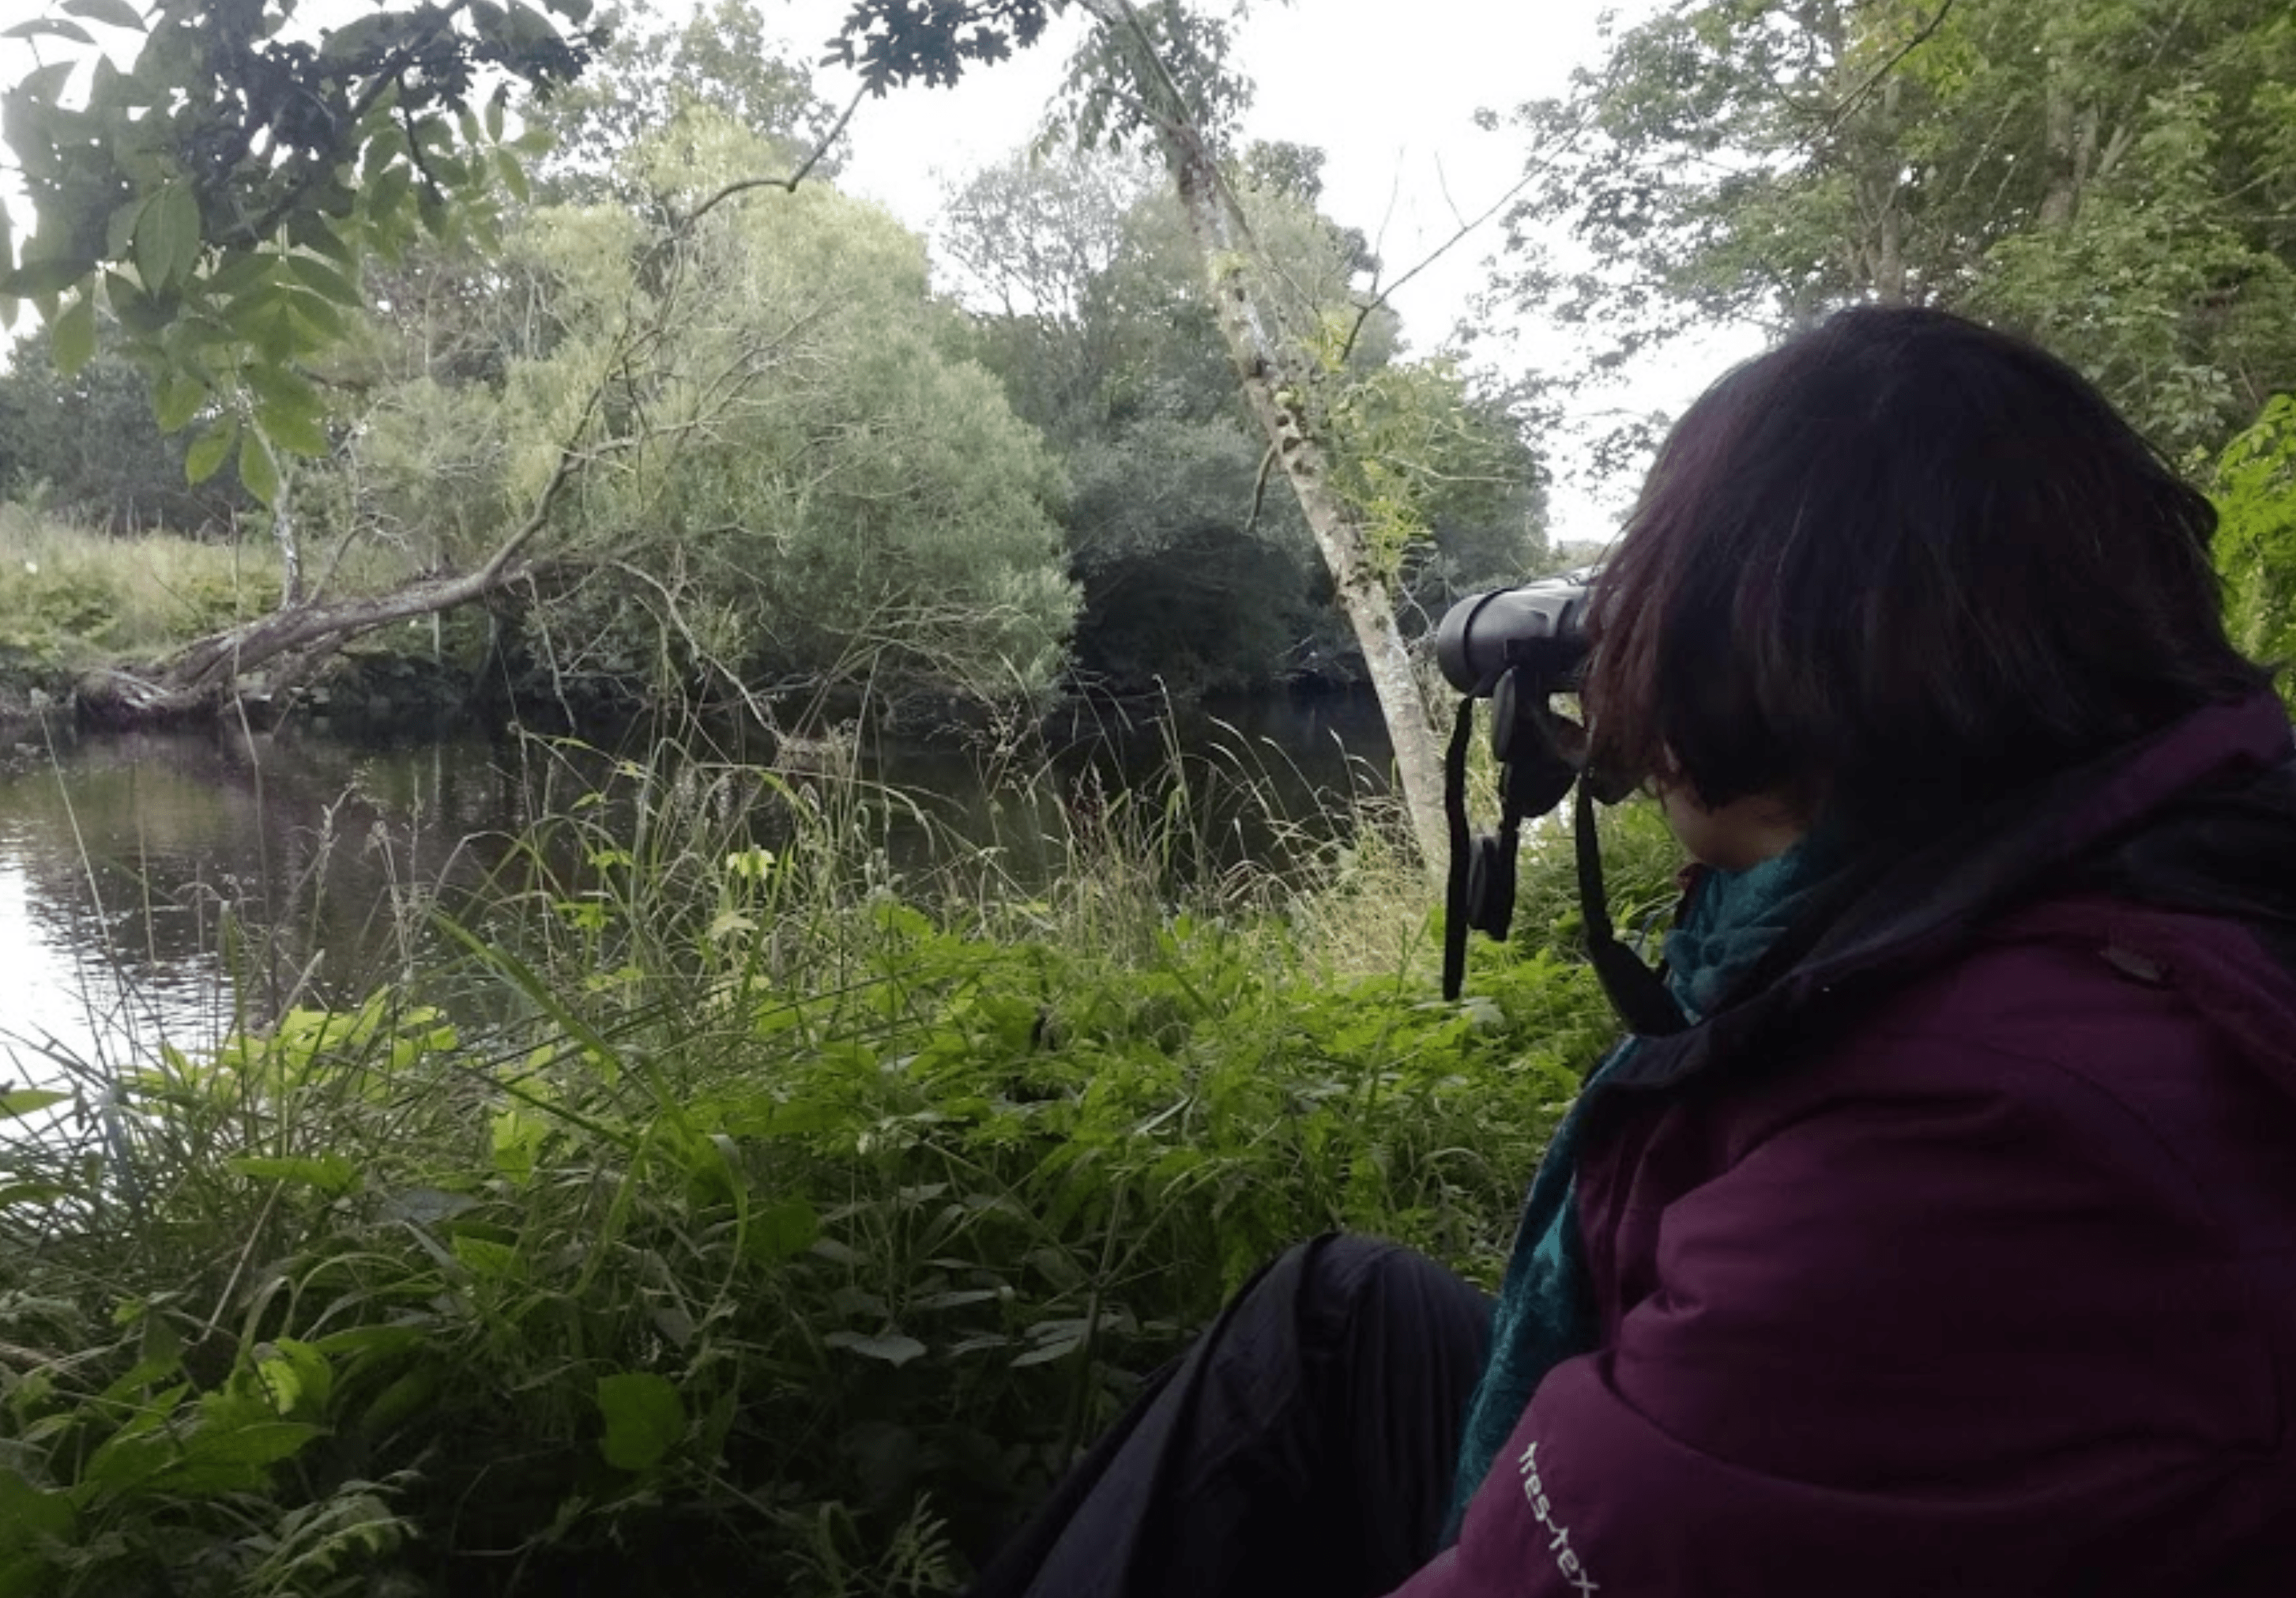 Woman watching for beavers through binoculars